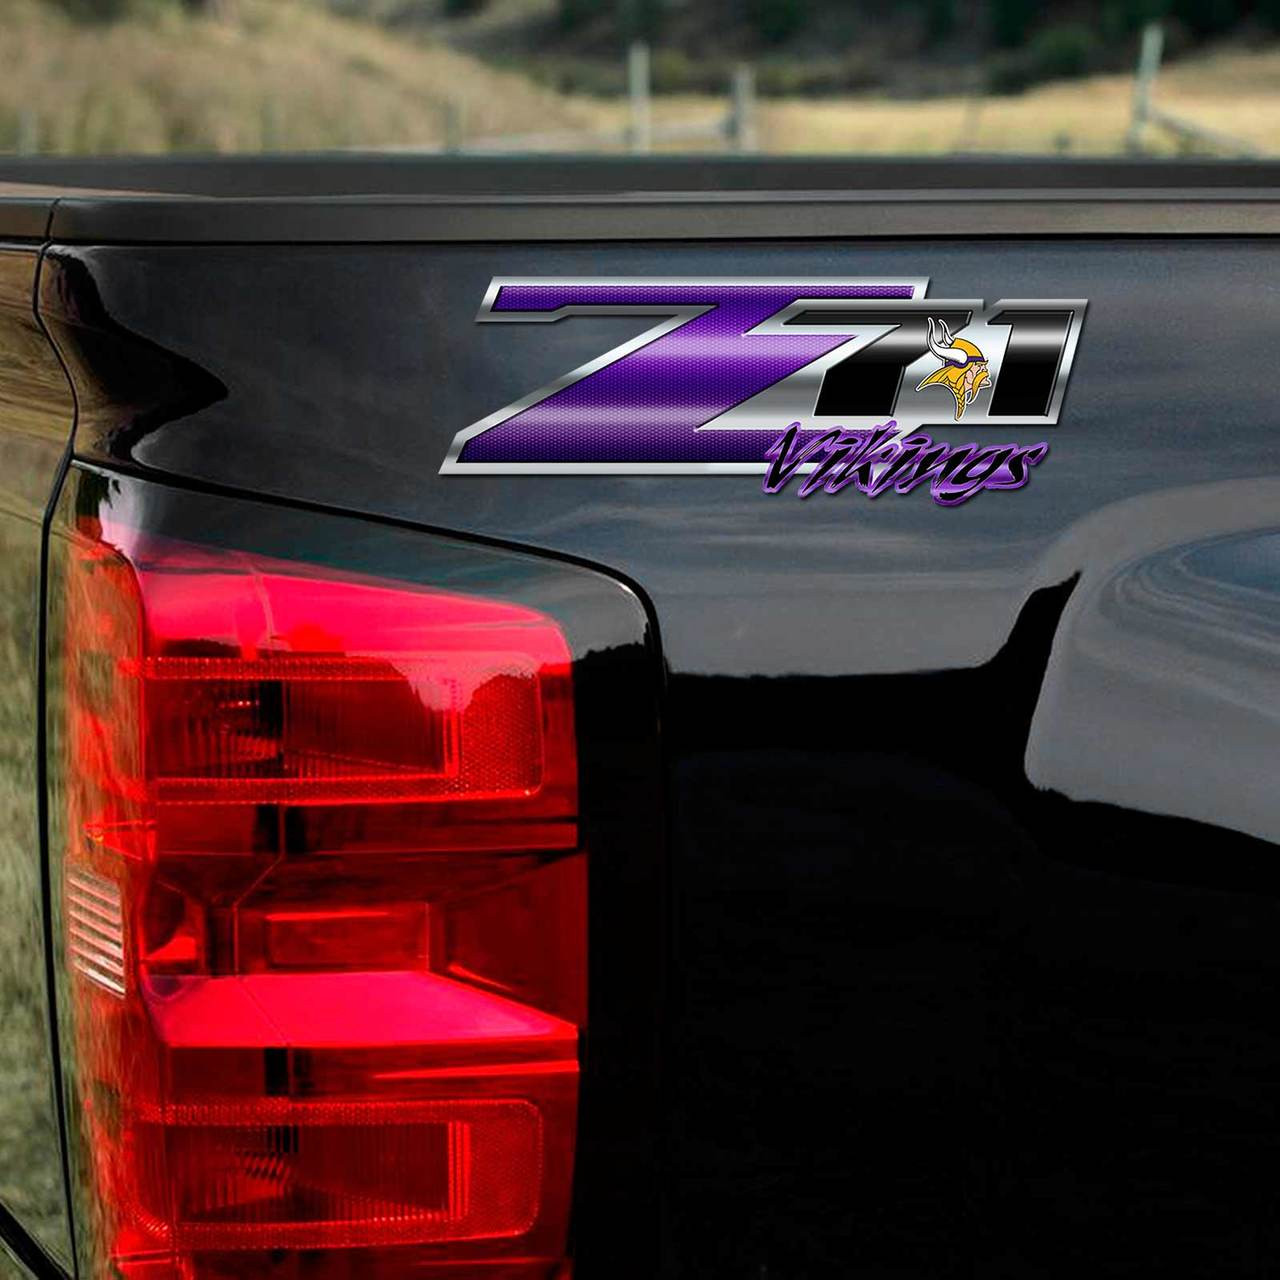 Vikings Z71 Truck Decals 4x4 Chevy Silverado Nfl Sticker